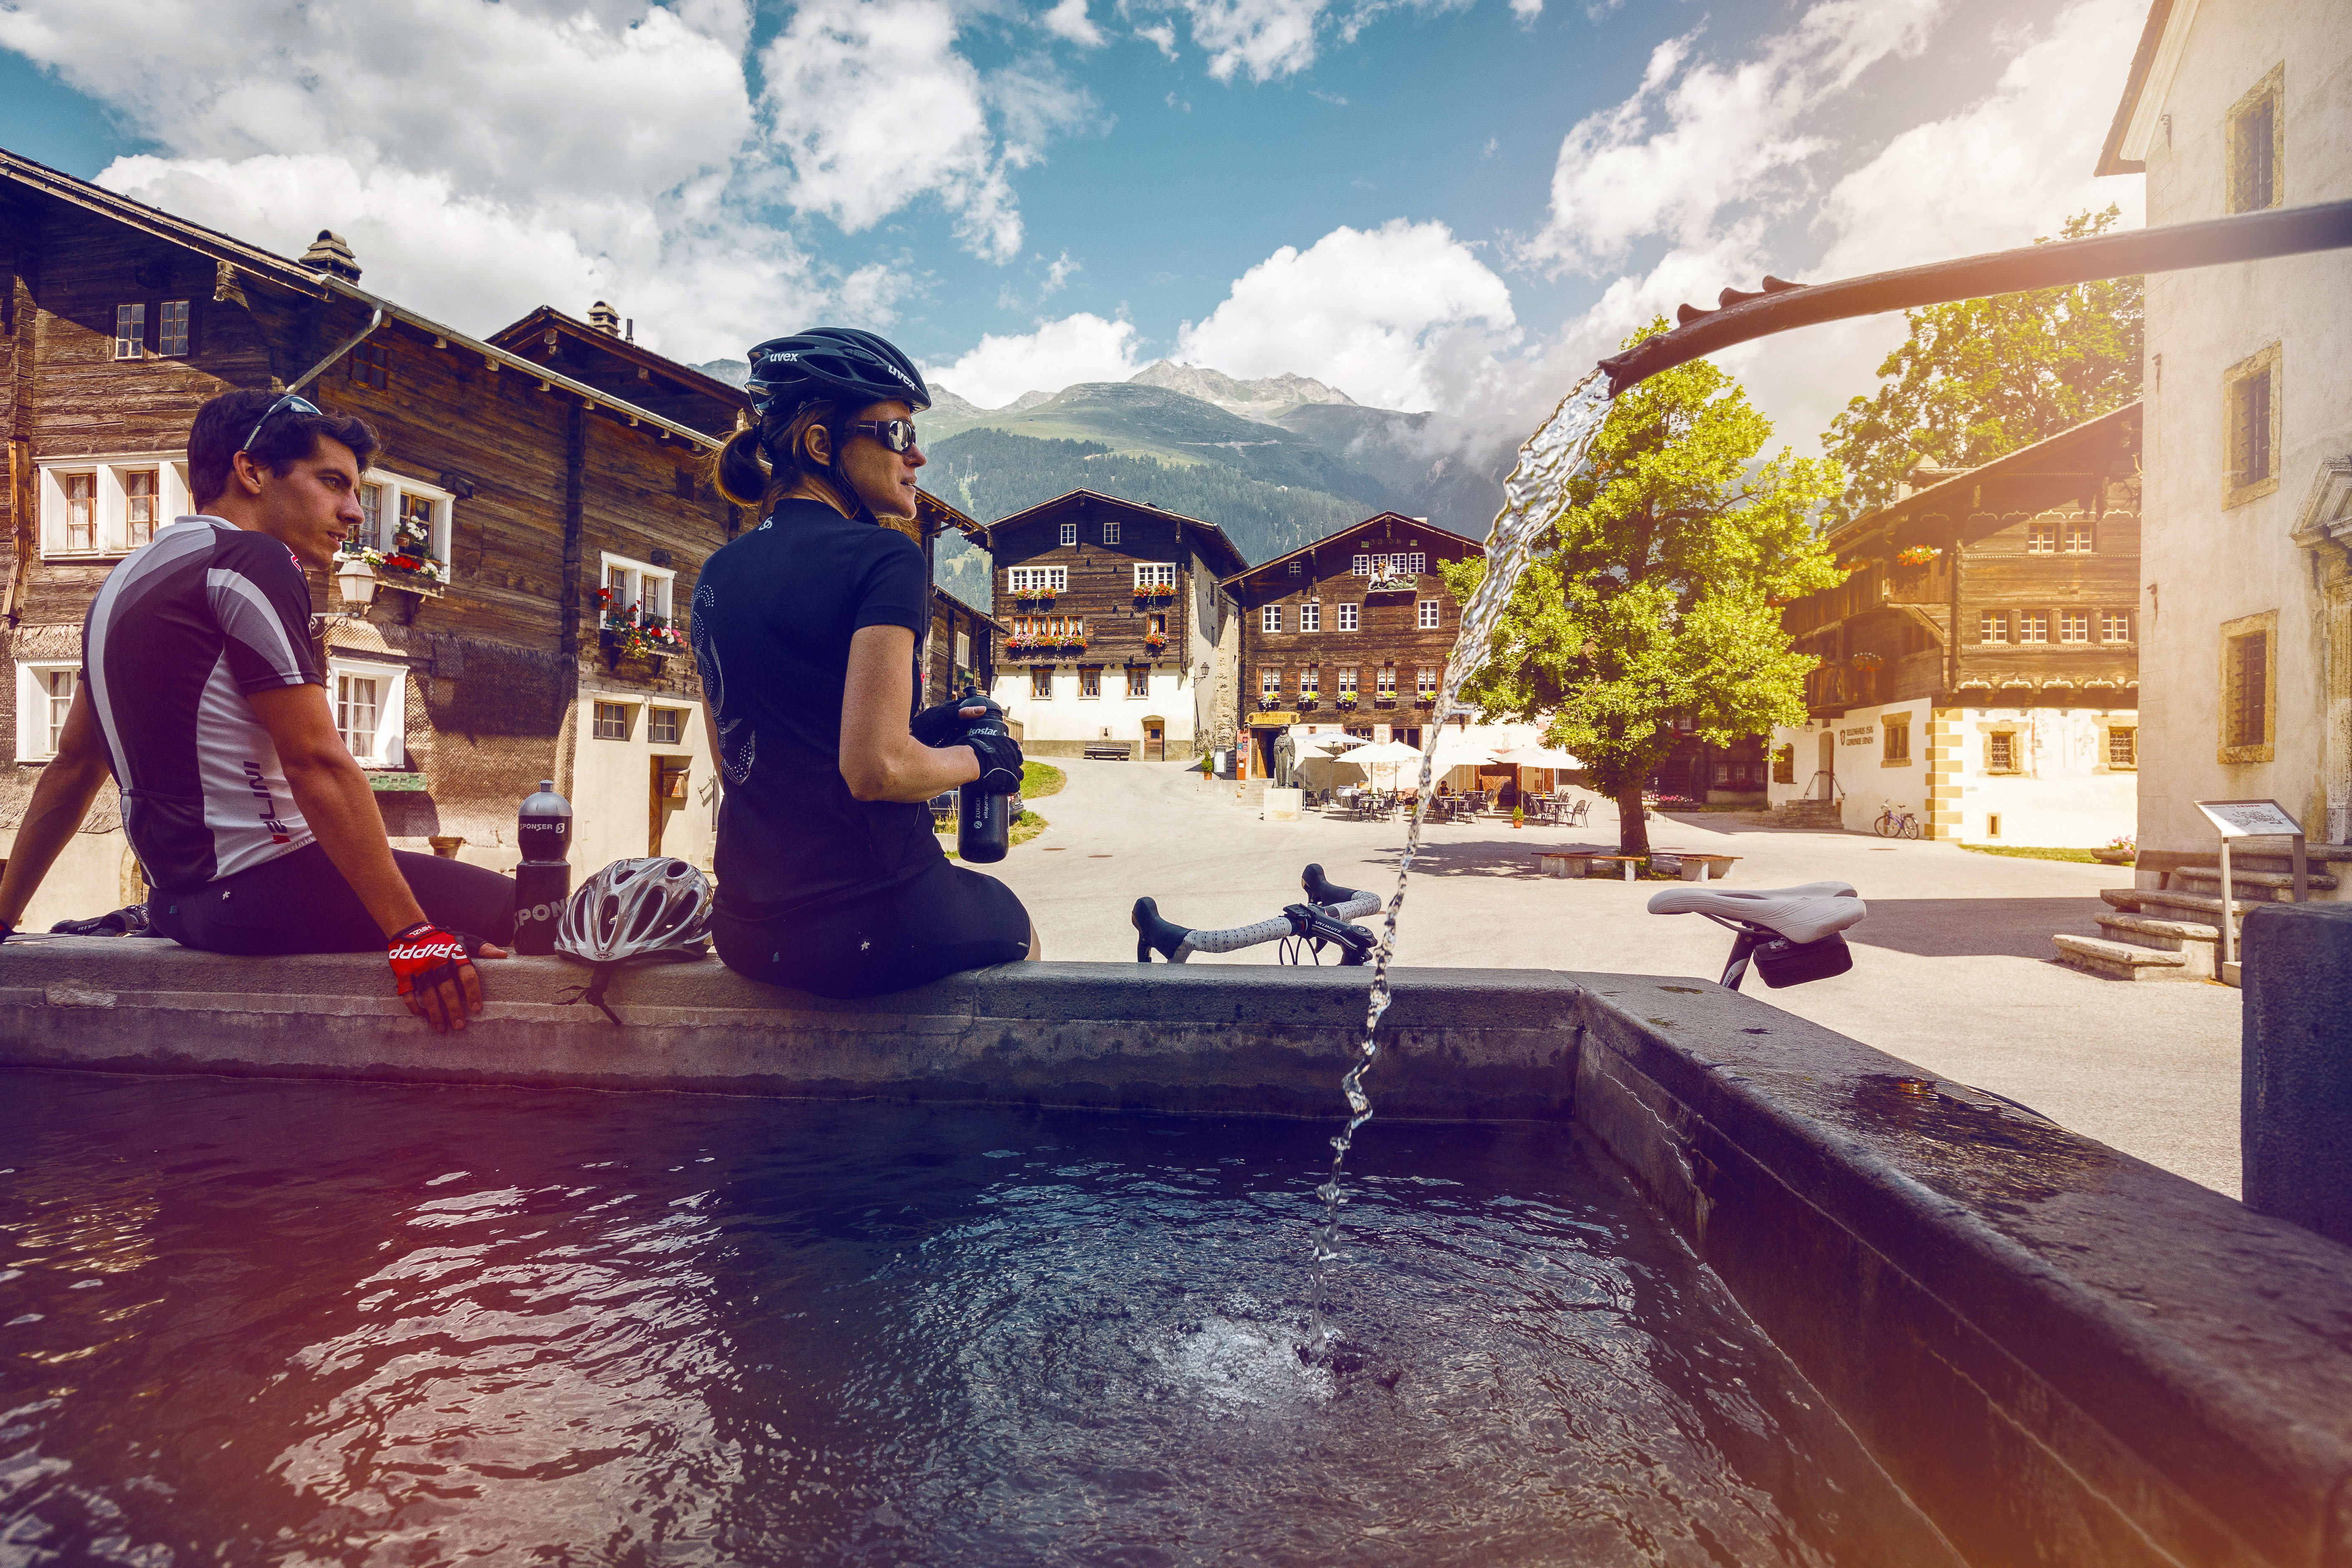 From the village of Oberwald to the charming town of Brig, this gentle downhill fourth stage of the Valais Cycling Tour is perfect after having climbed one of the mythic Alpine passes of the region (Nufenen, Grimsel or Furka).